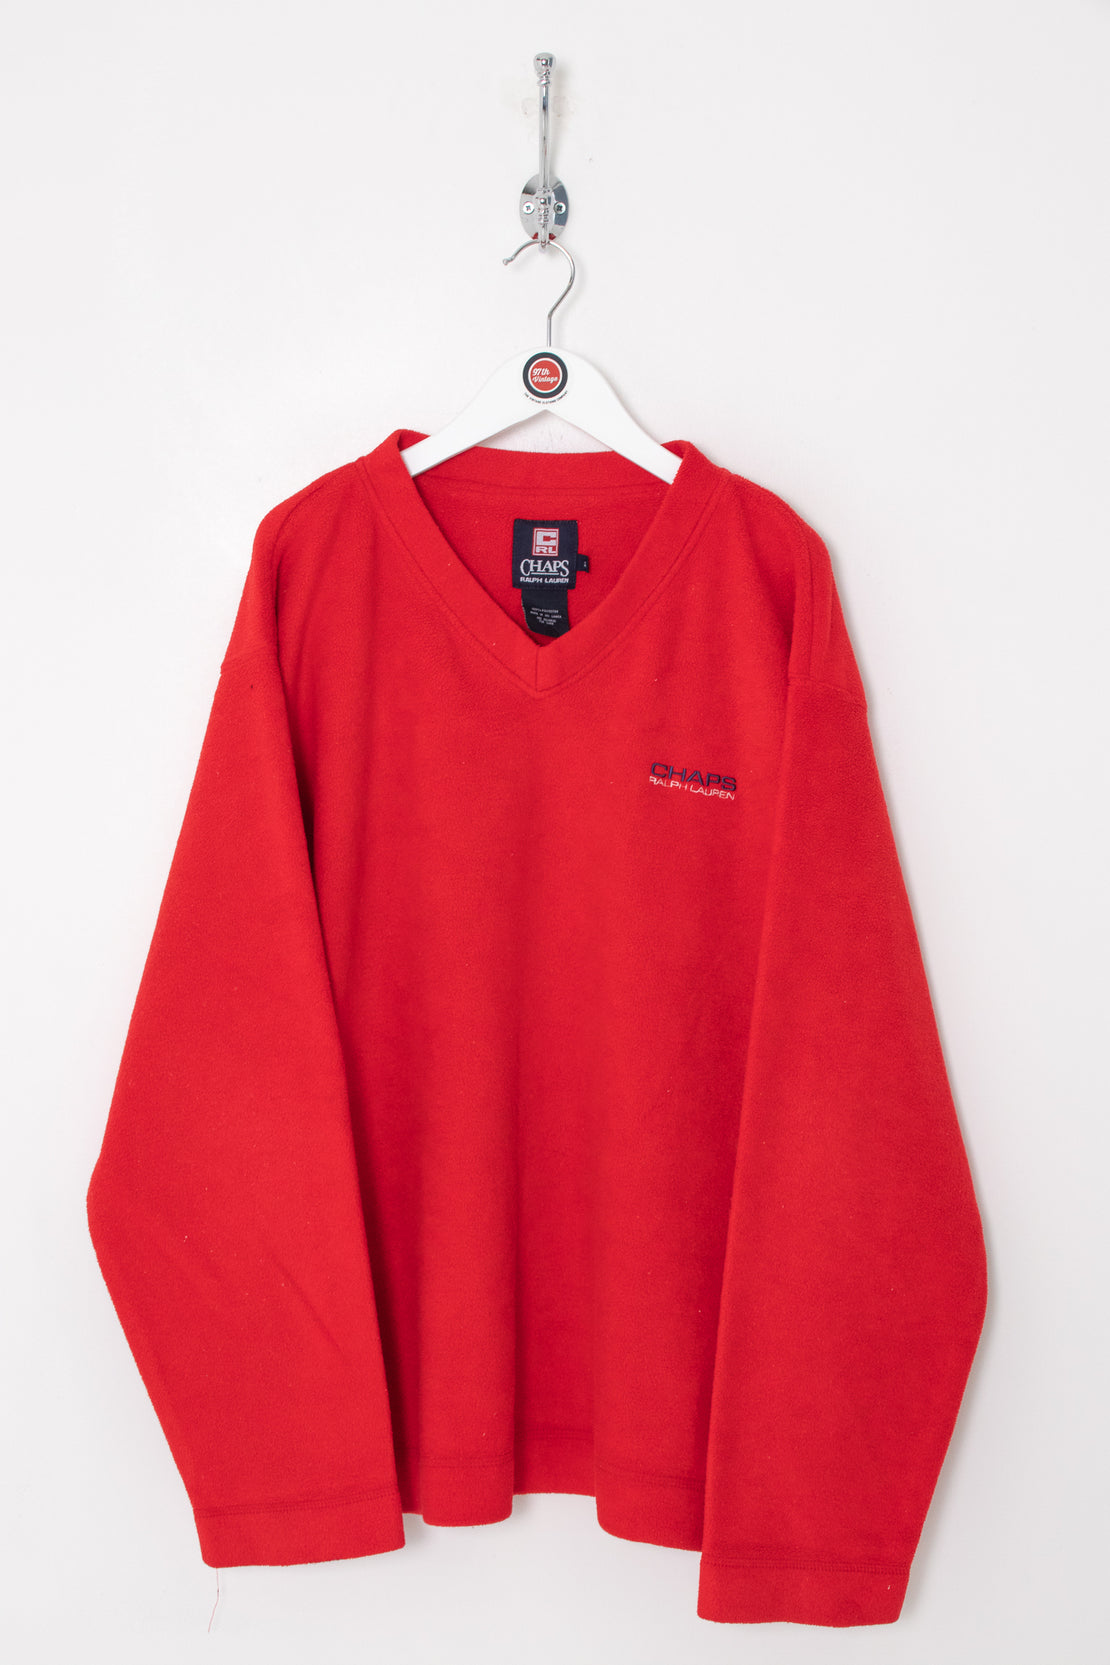 Ralph Lauren Chaps Fleece (XL)